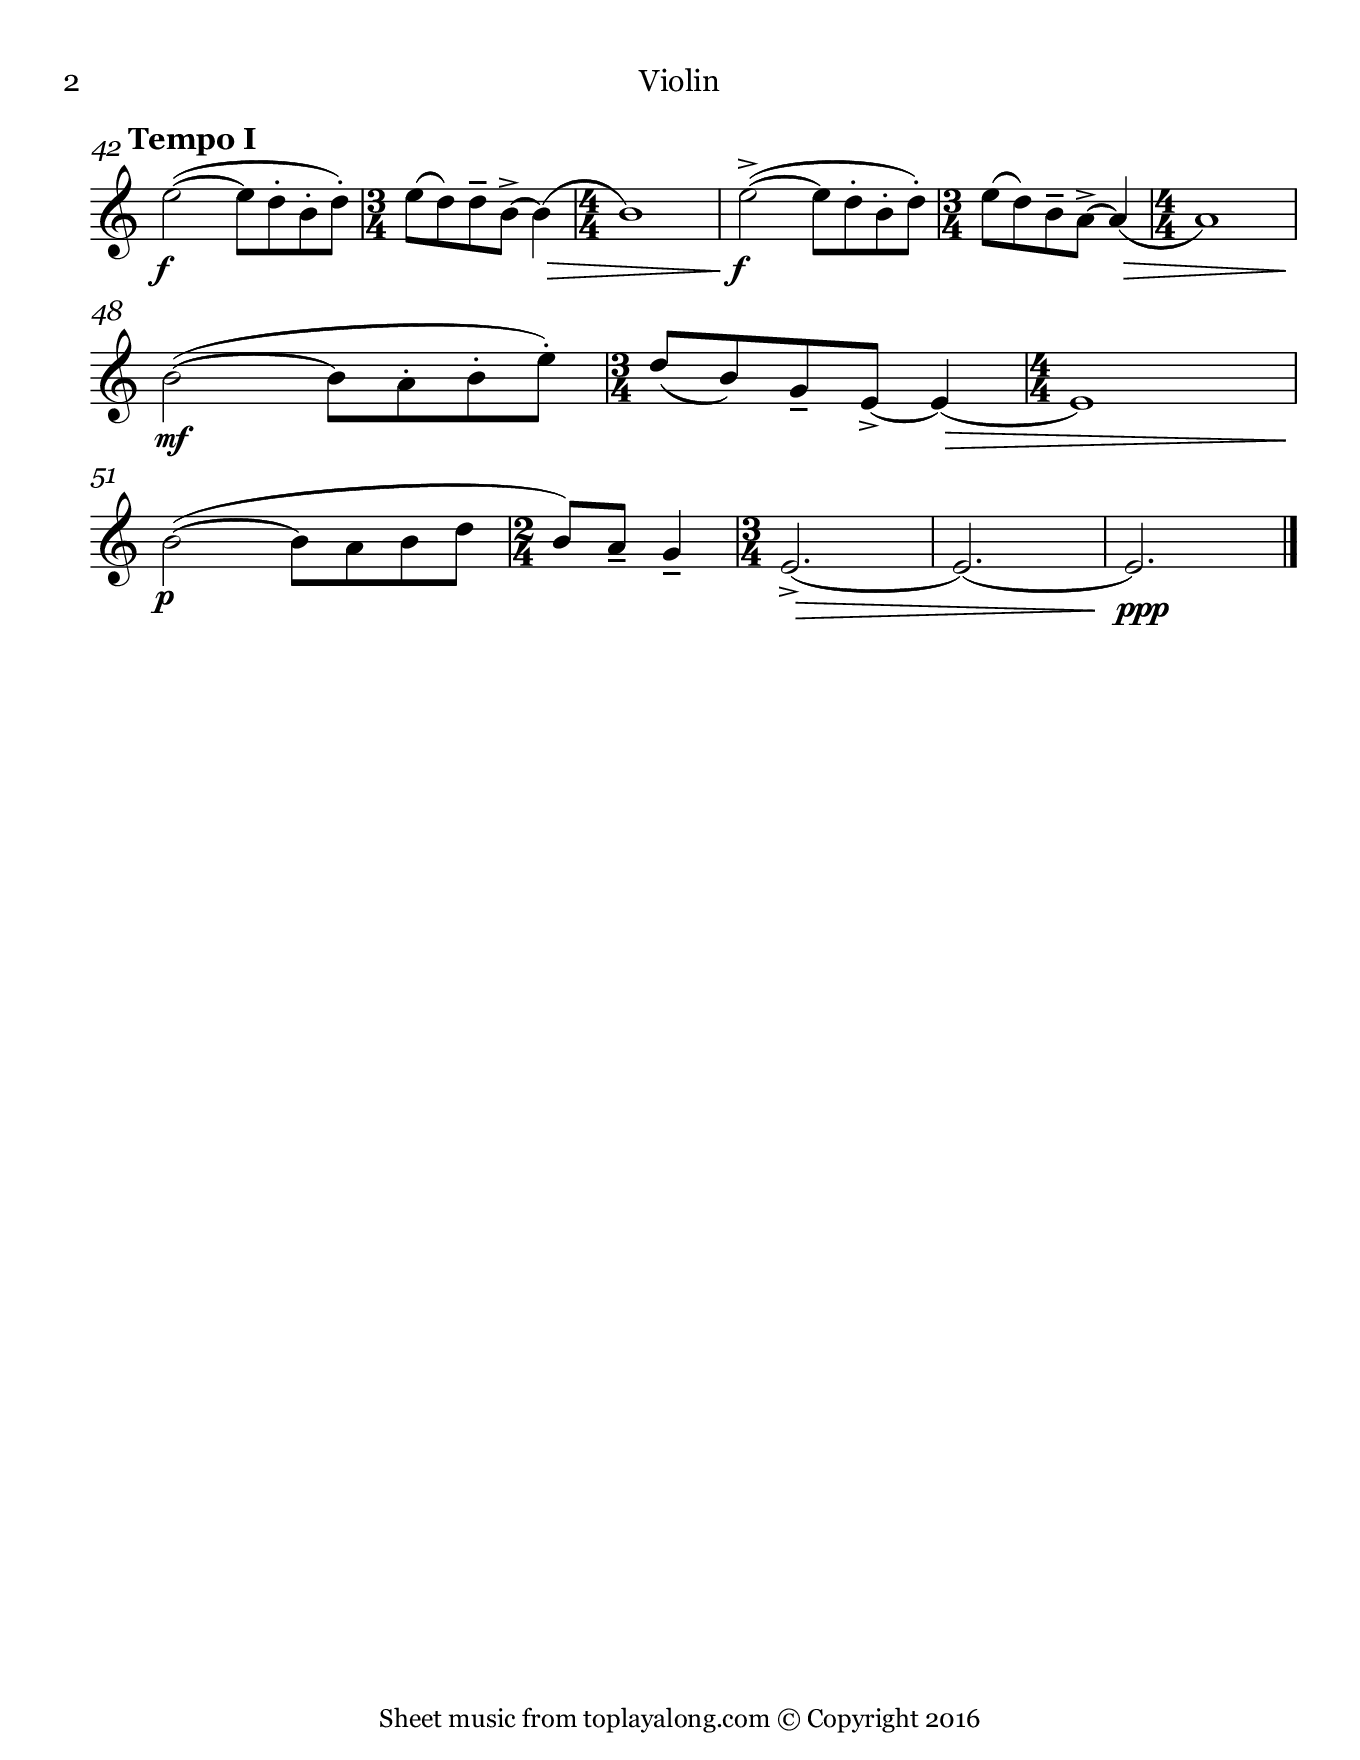 Evening in the Village by Bartok. Sheet music for Violin, page 2.